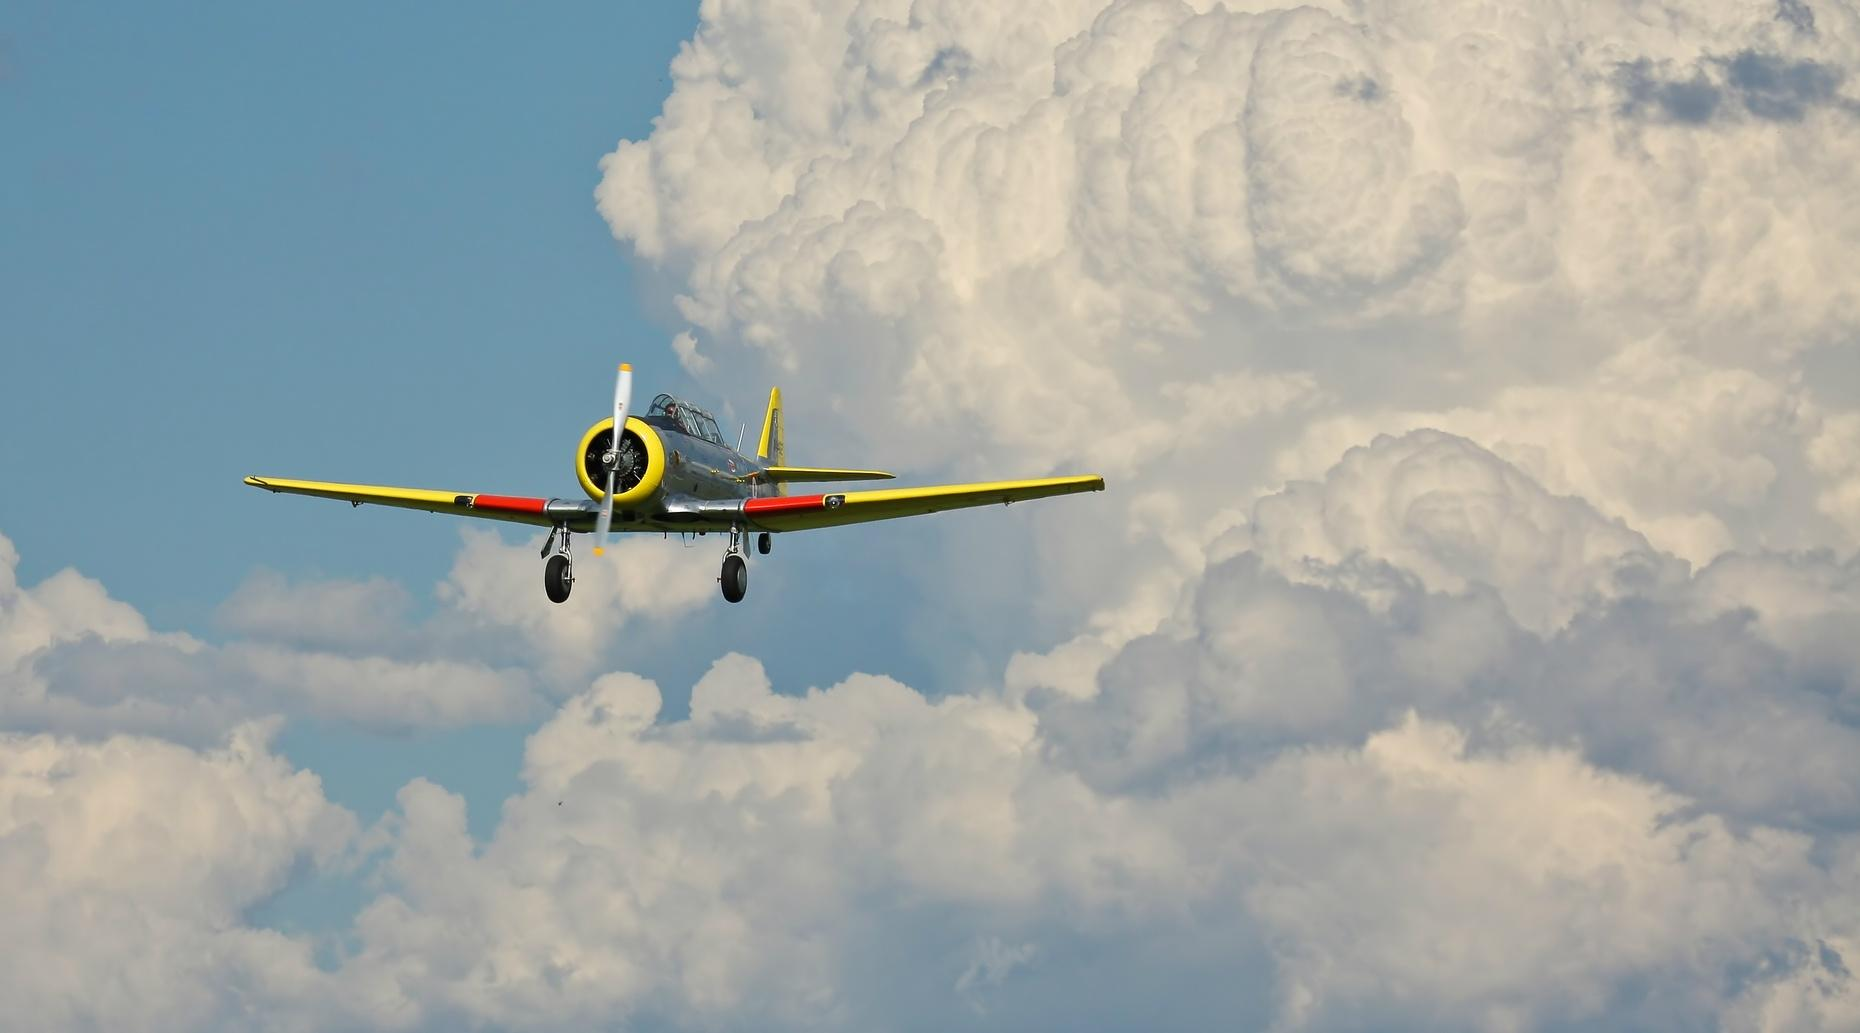 T6 Texan Ace Adventure From Heber City